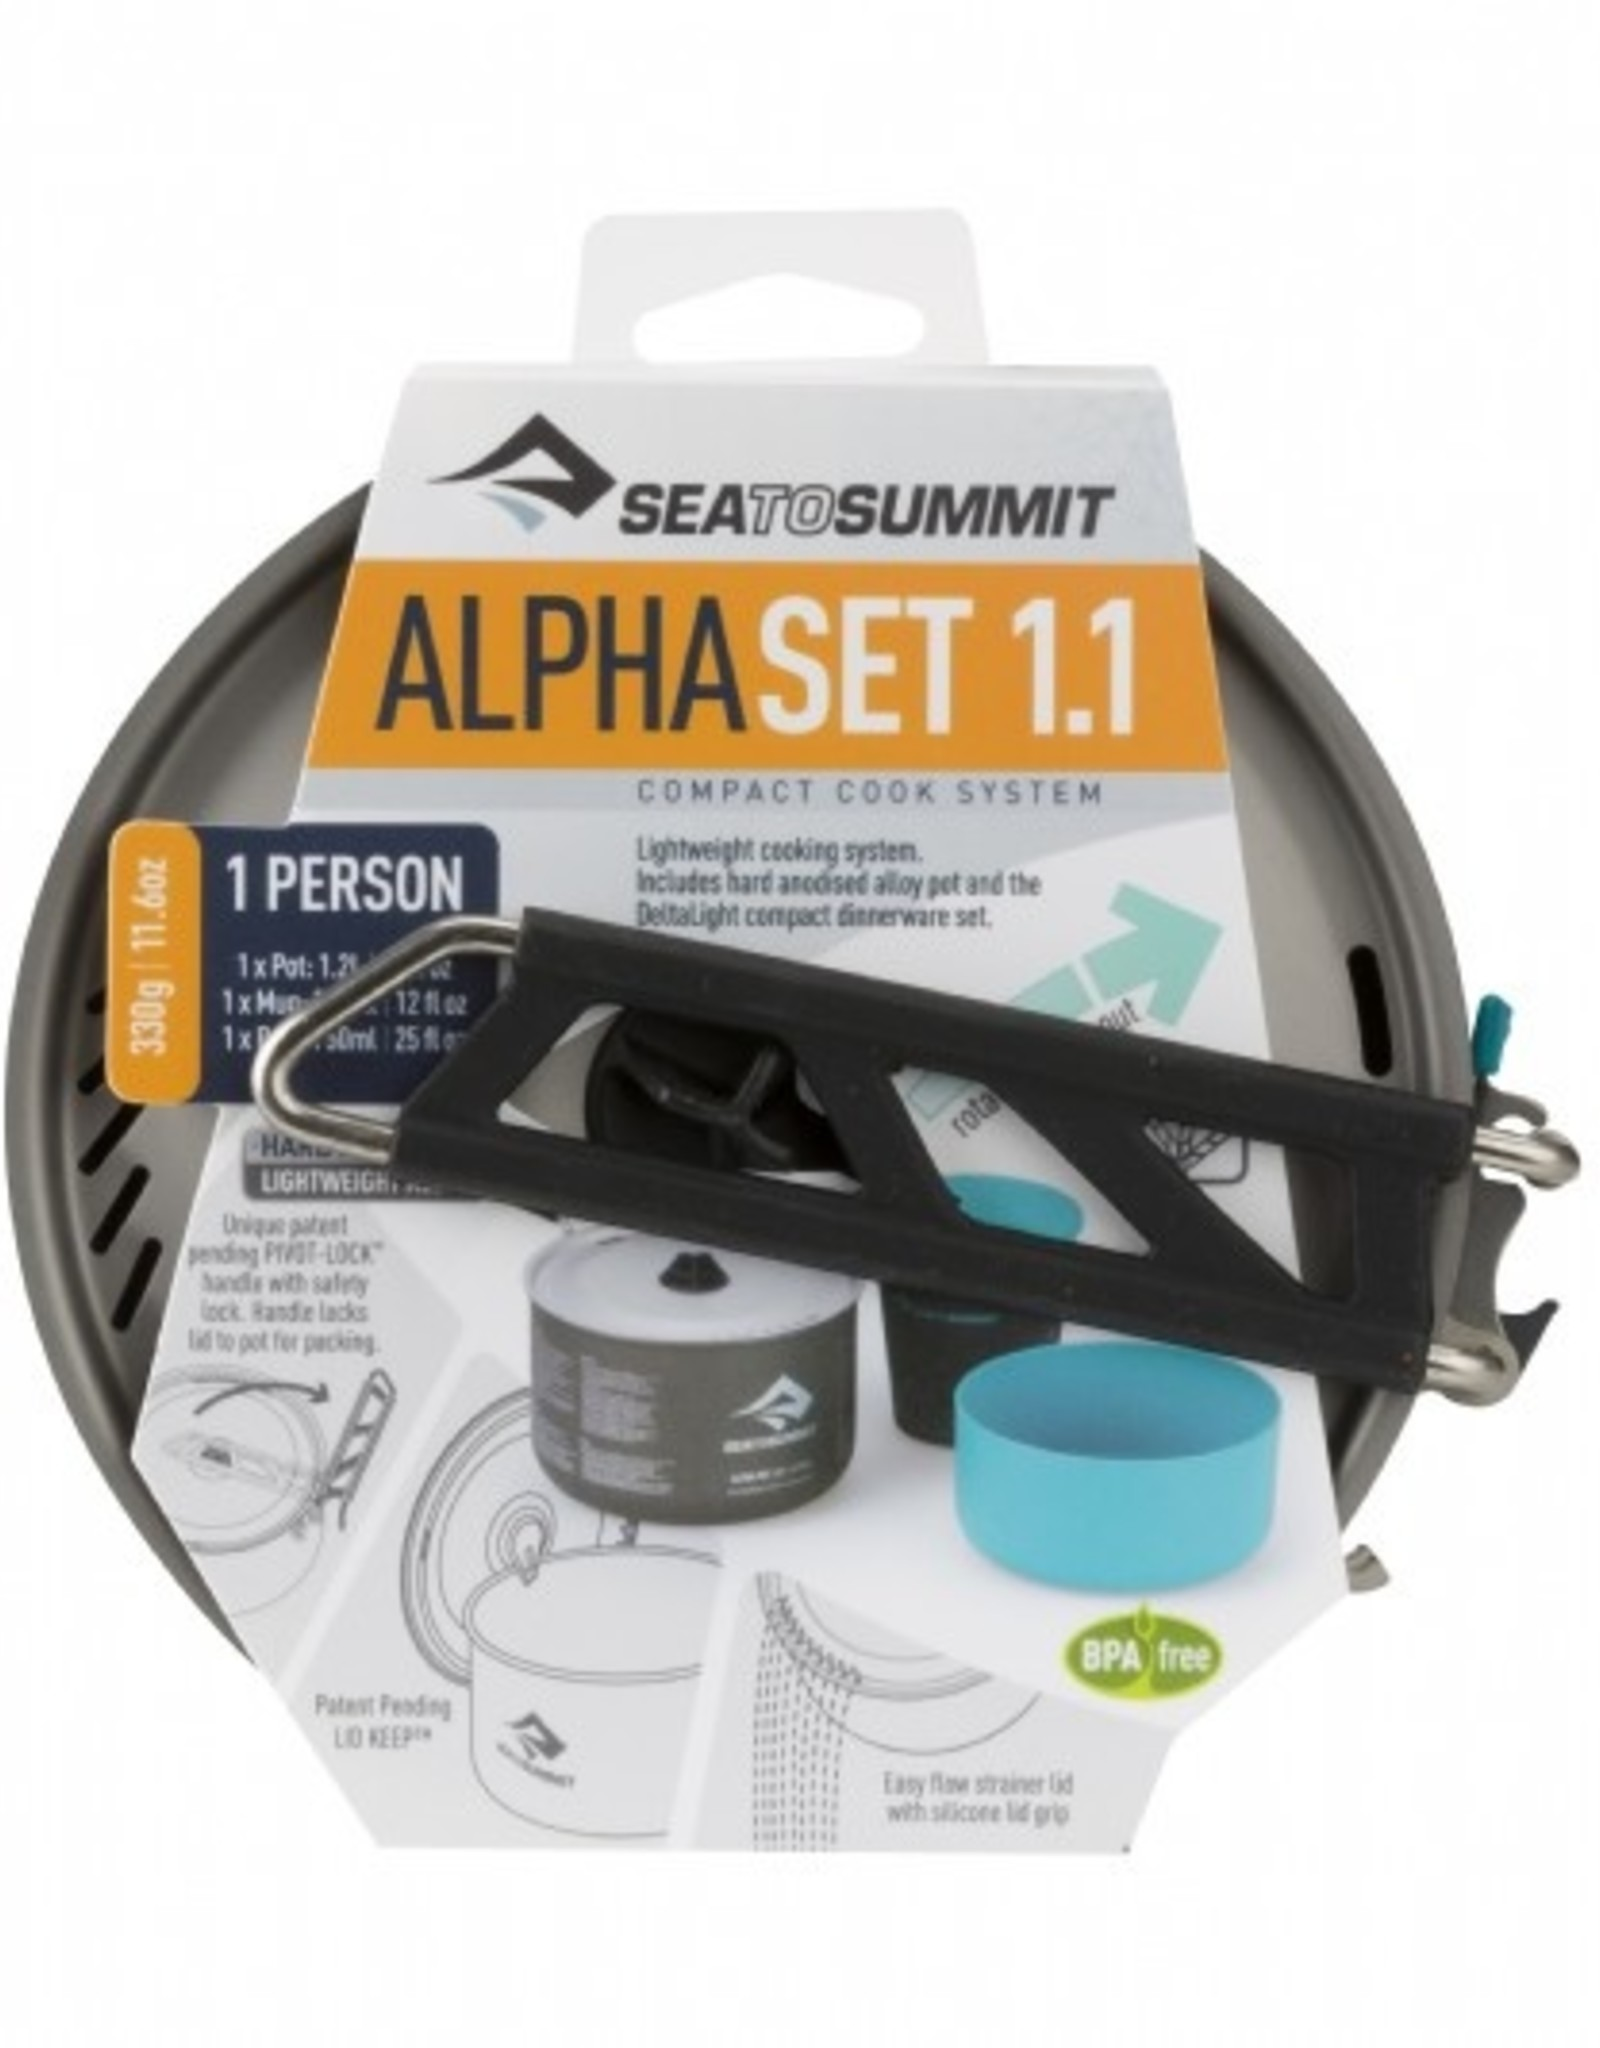 Sea to Summit - BINNENKORT VERKRIJGBAAR - Sea to Summit Alpha cookset 1.1